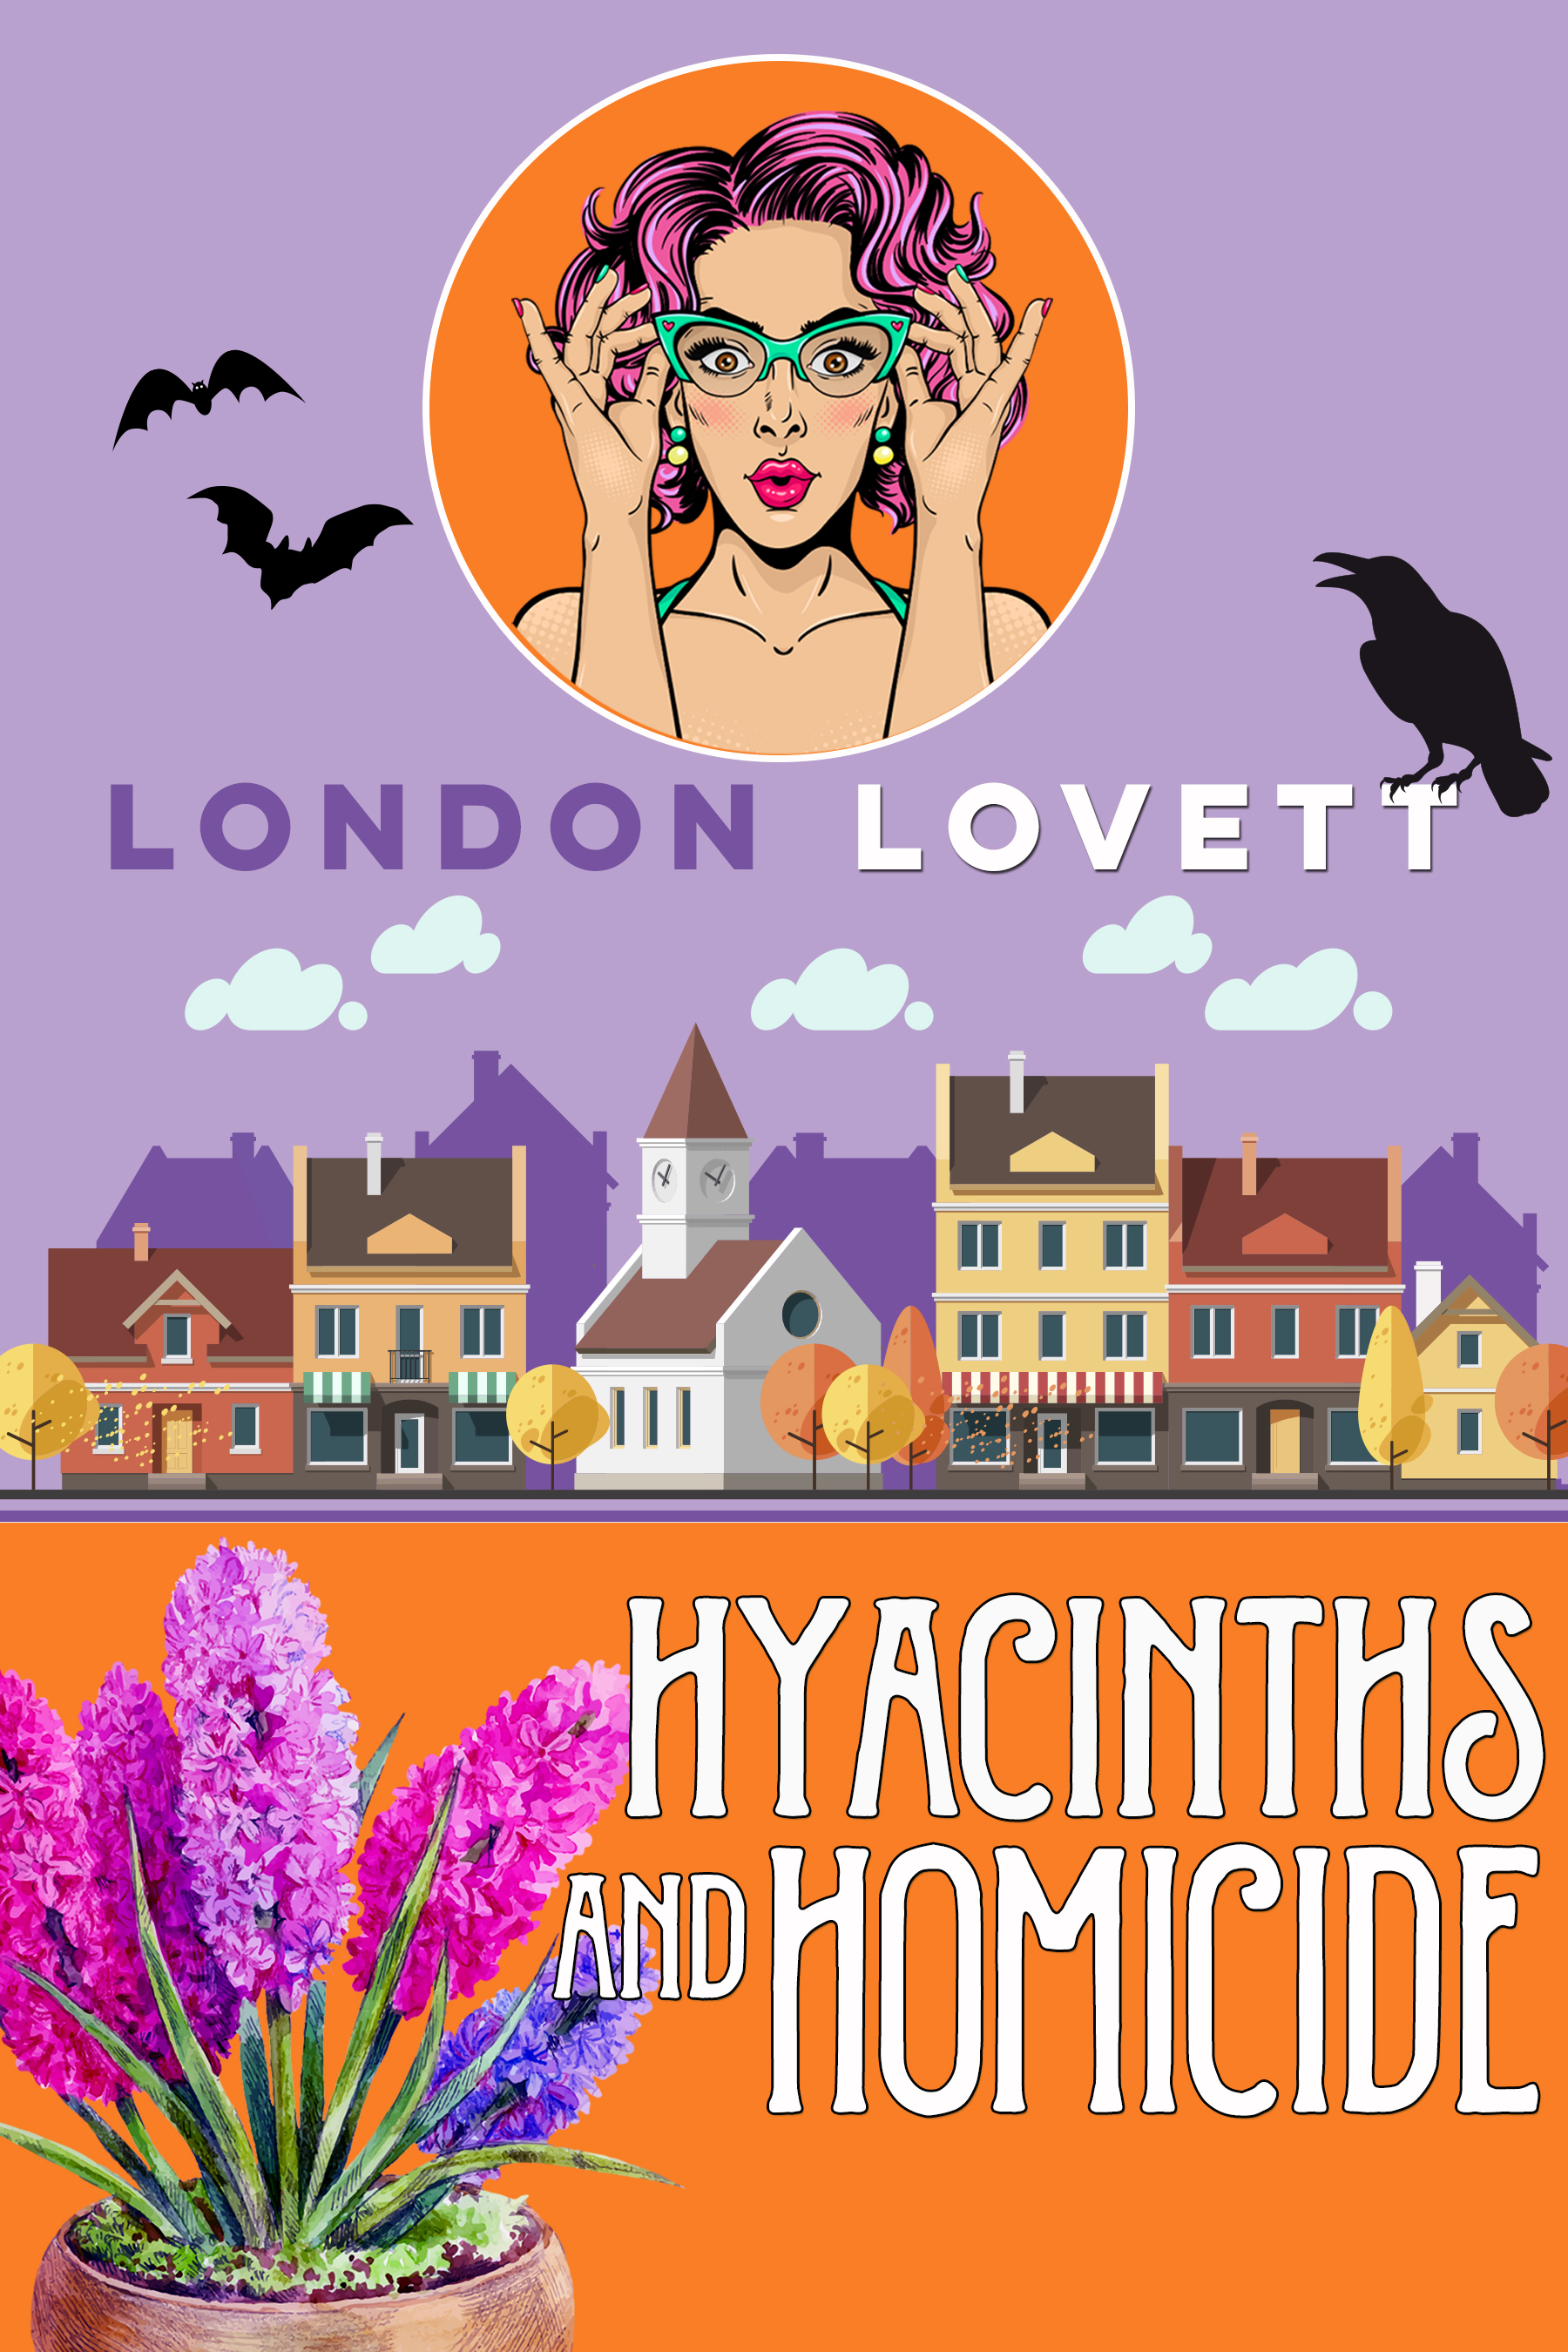 Hyacinths and Homicide - After a busy day providing bouquets and pumpkins for a ten year high school reunion at the posh Chesterton Regency Hotel, Lacey Pinkerton is thrilled to have a nice romantic dinner with her boyfriend, Detective James Briggs. But when the reunion's class bully is thrown from the hotel balcony, Briggs is called to duty. Lacey soon finds herself involved in a complicated murder investigation where the evidence points in every direction and the victim has more than his share of enemies.Read on: Amazon iBooks Nook Kobo Google